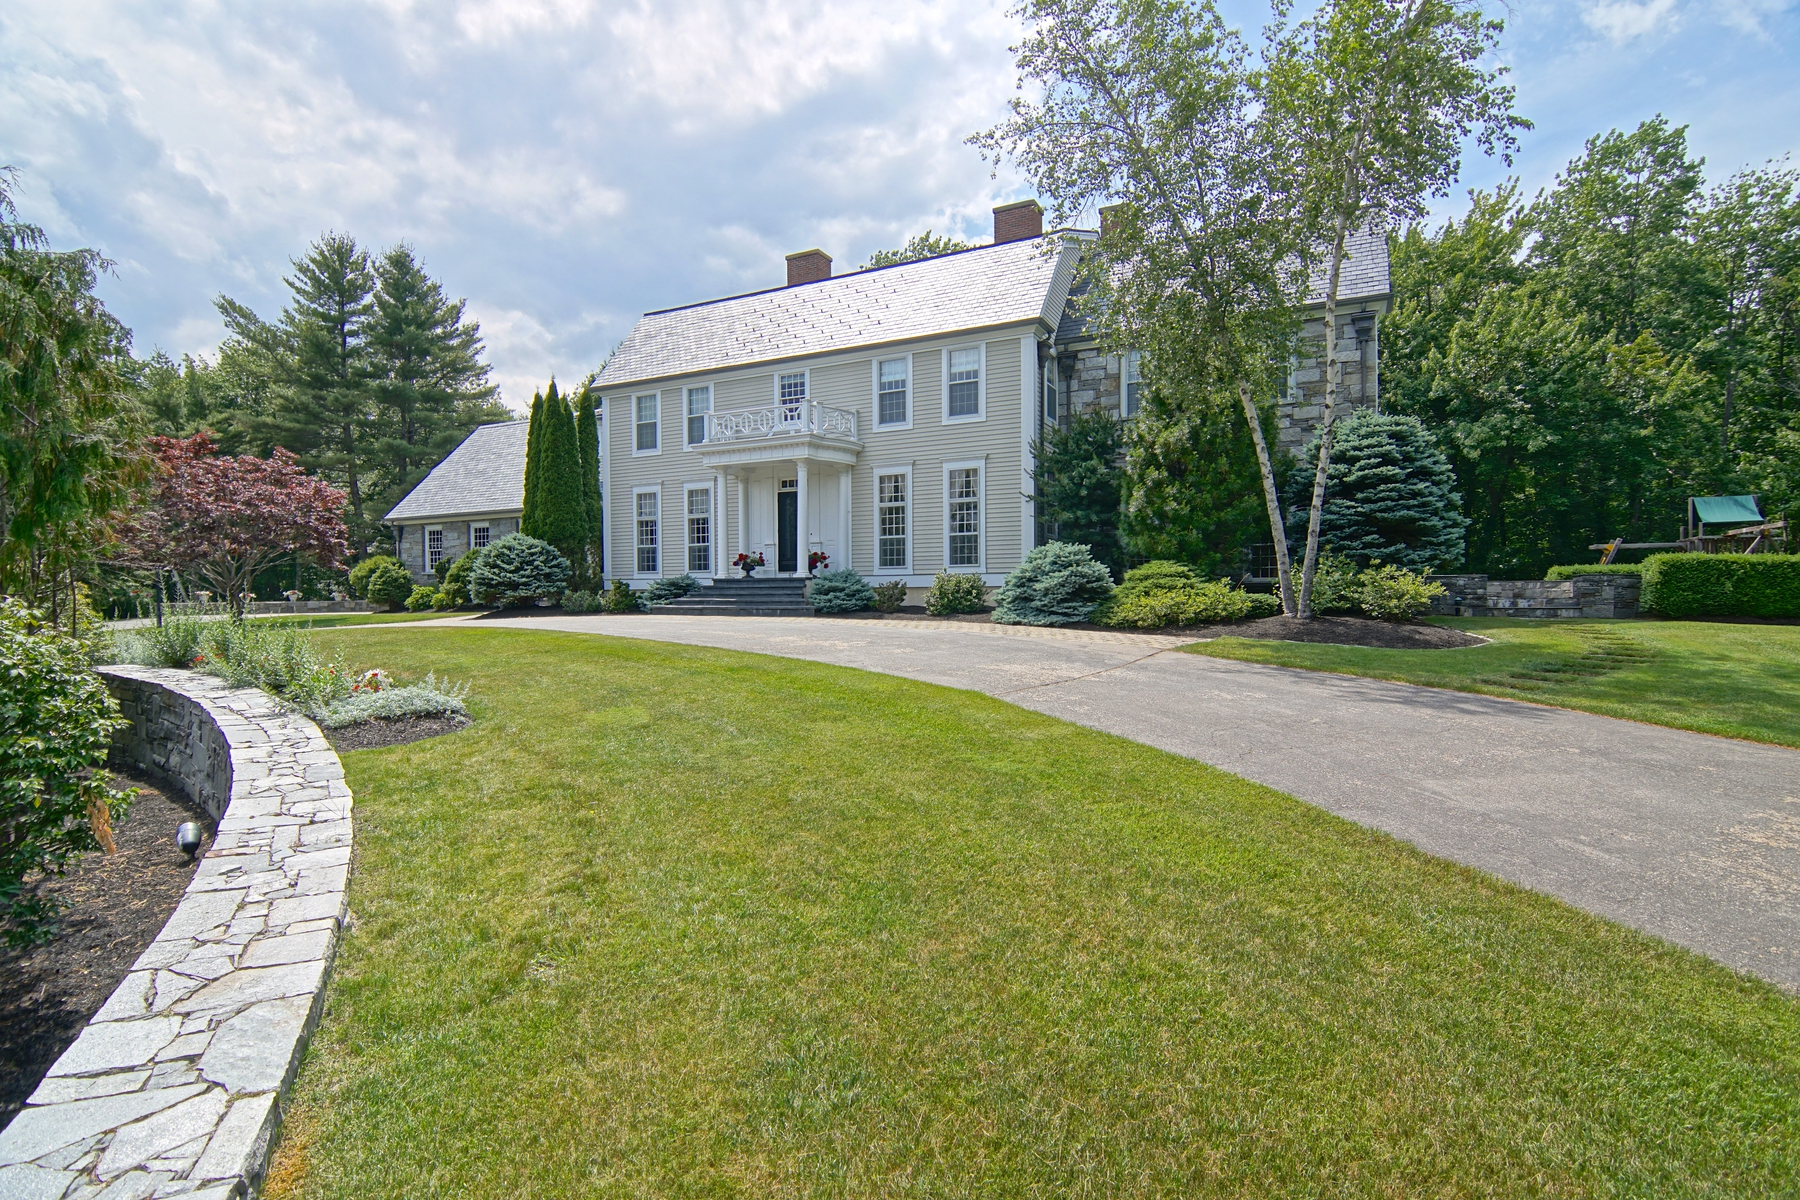 Single Family Home for Sale at Overlooking the 12th Green 45 Fairway Drive Rye, New Hampshire 03870 United States